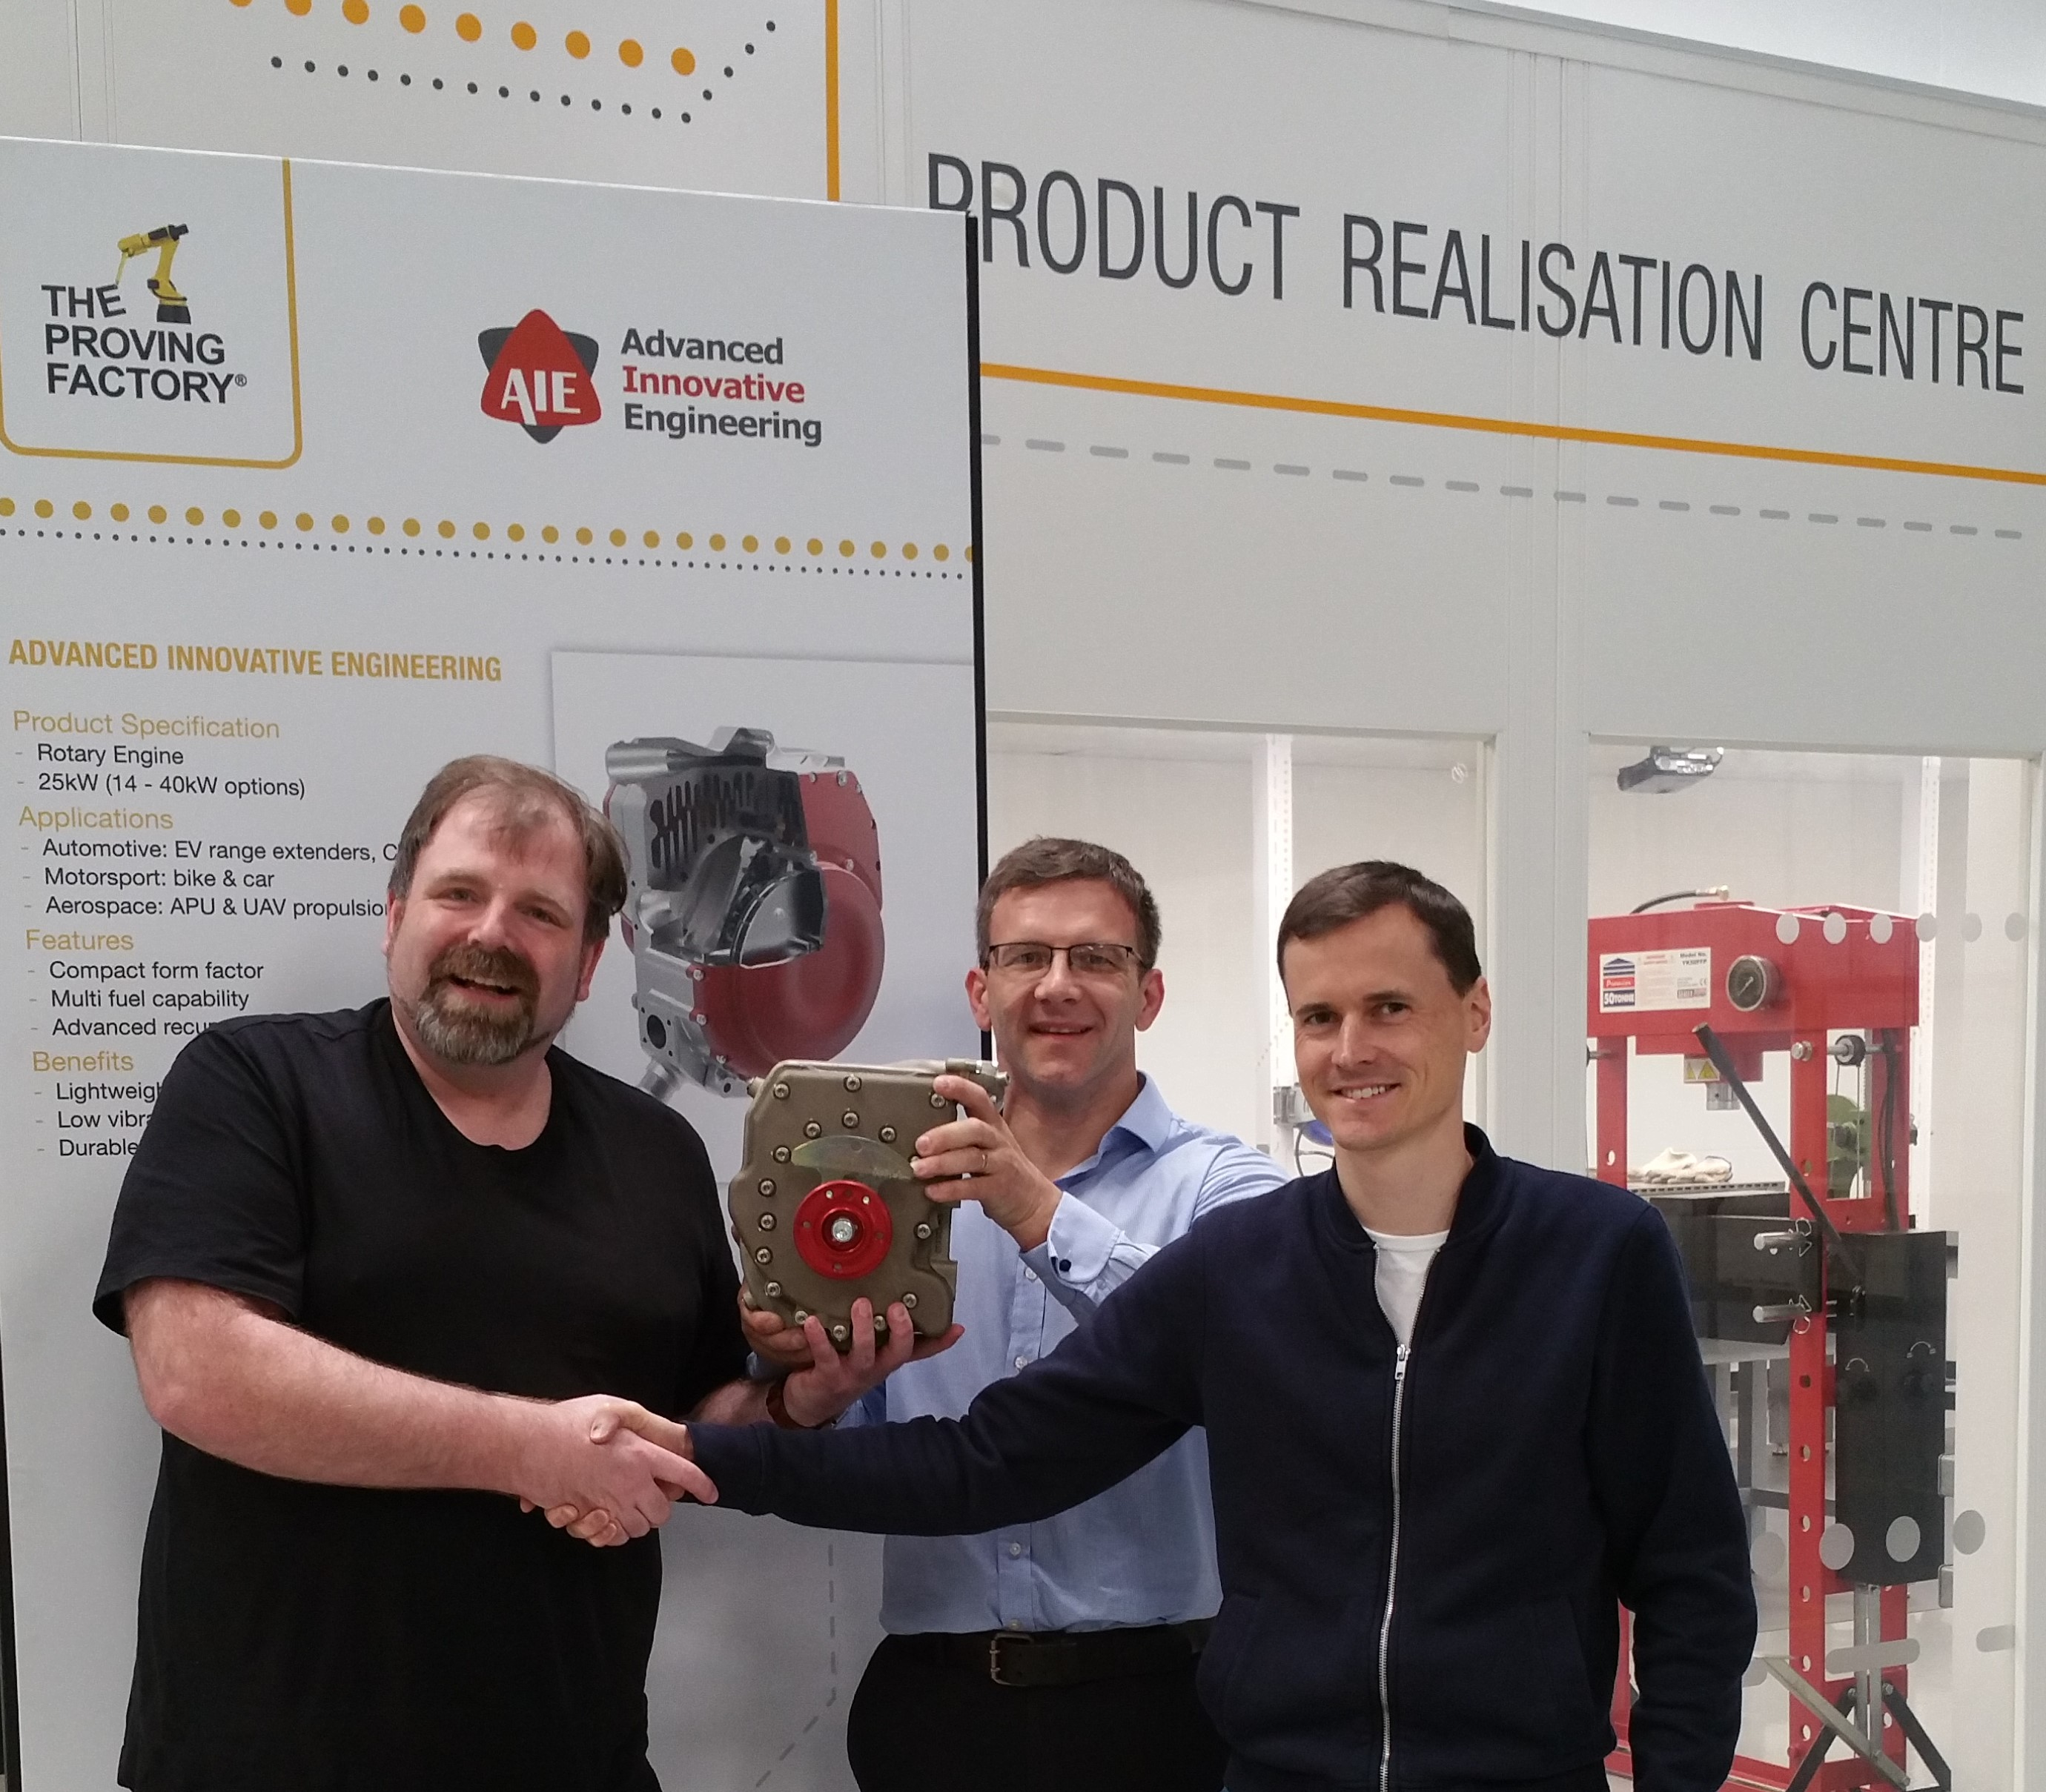 World-Class 225CS Rotary Engine Enters Serial Production with The Proving Factory